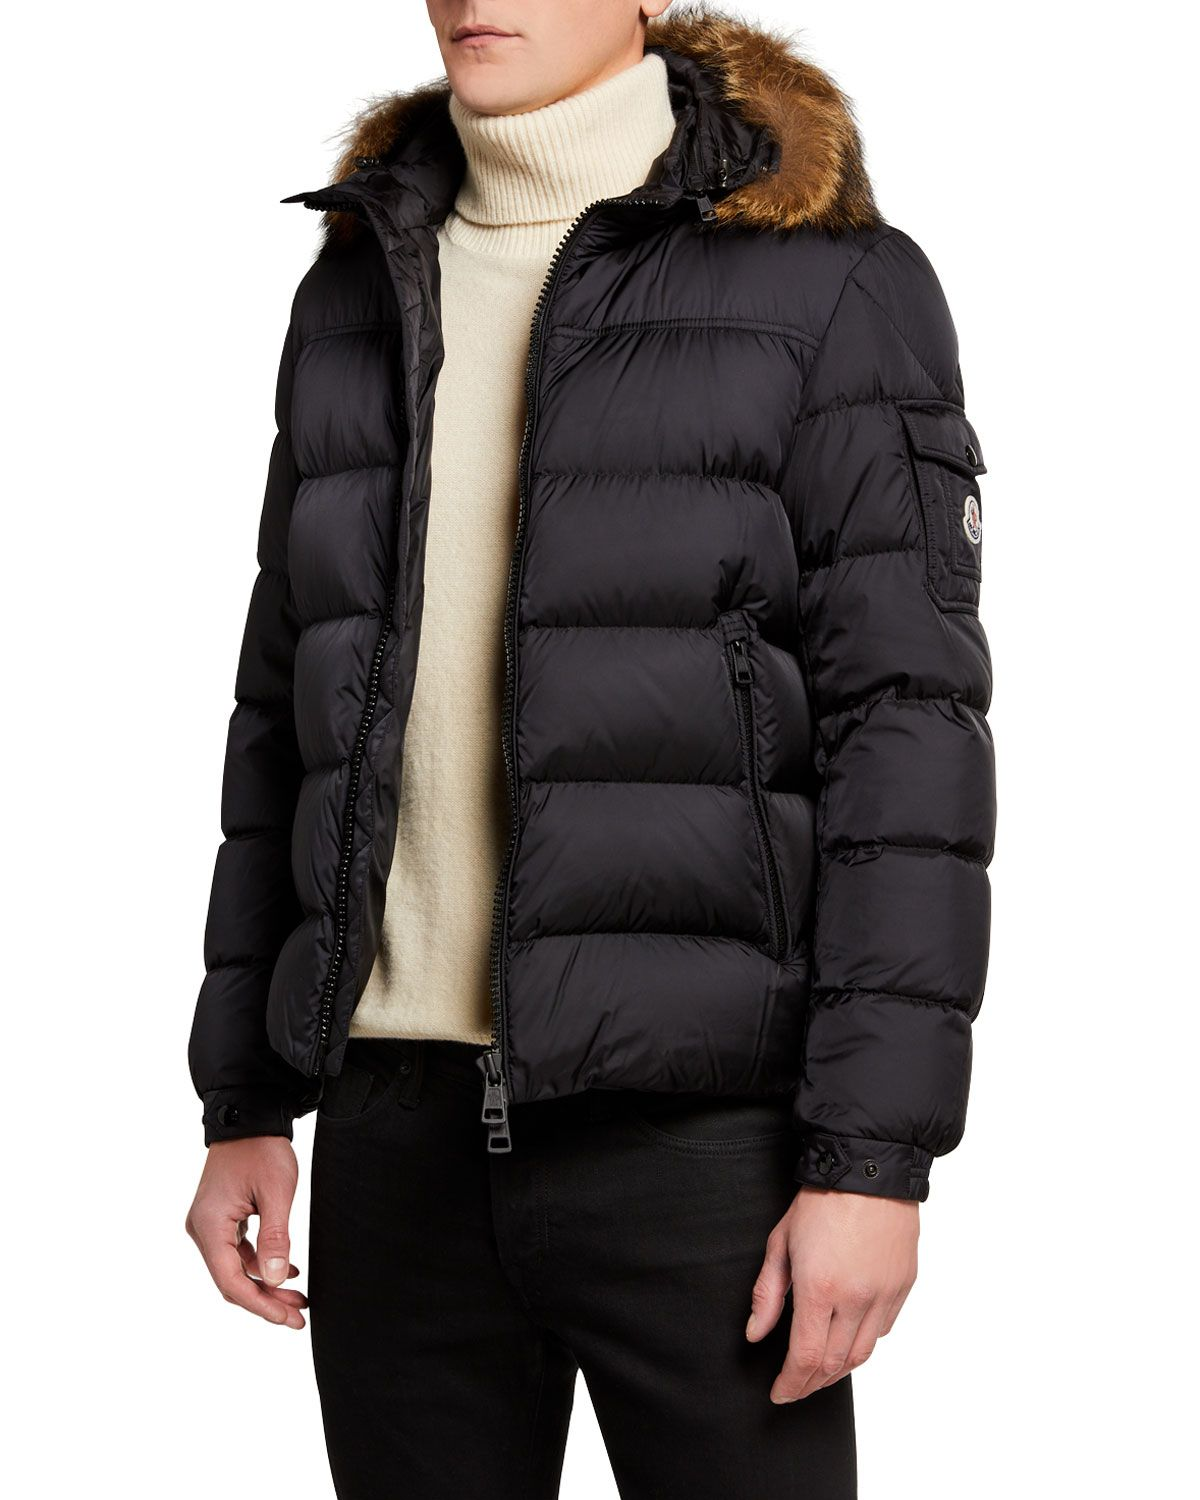 Men's marque furtrim puffer jacket in 2020 (With images